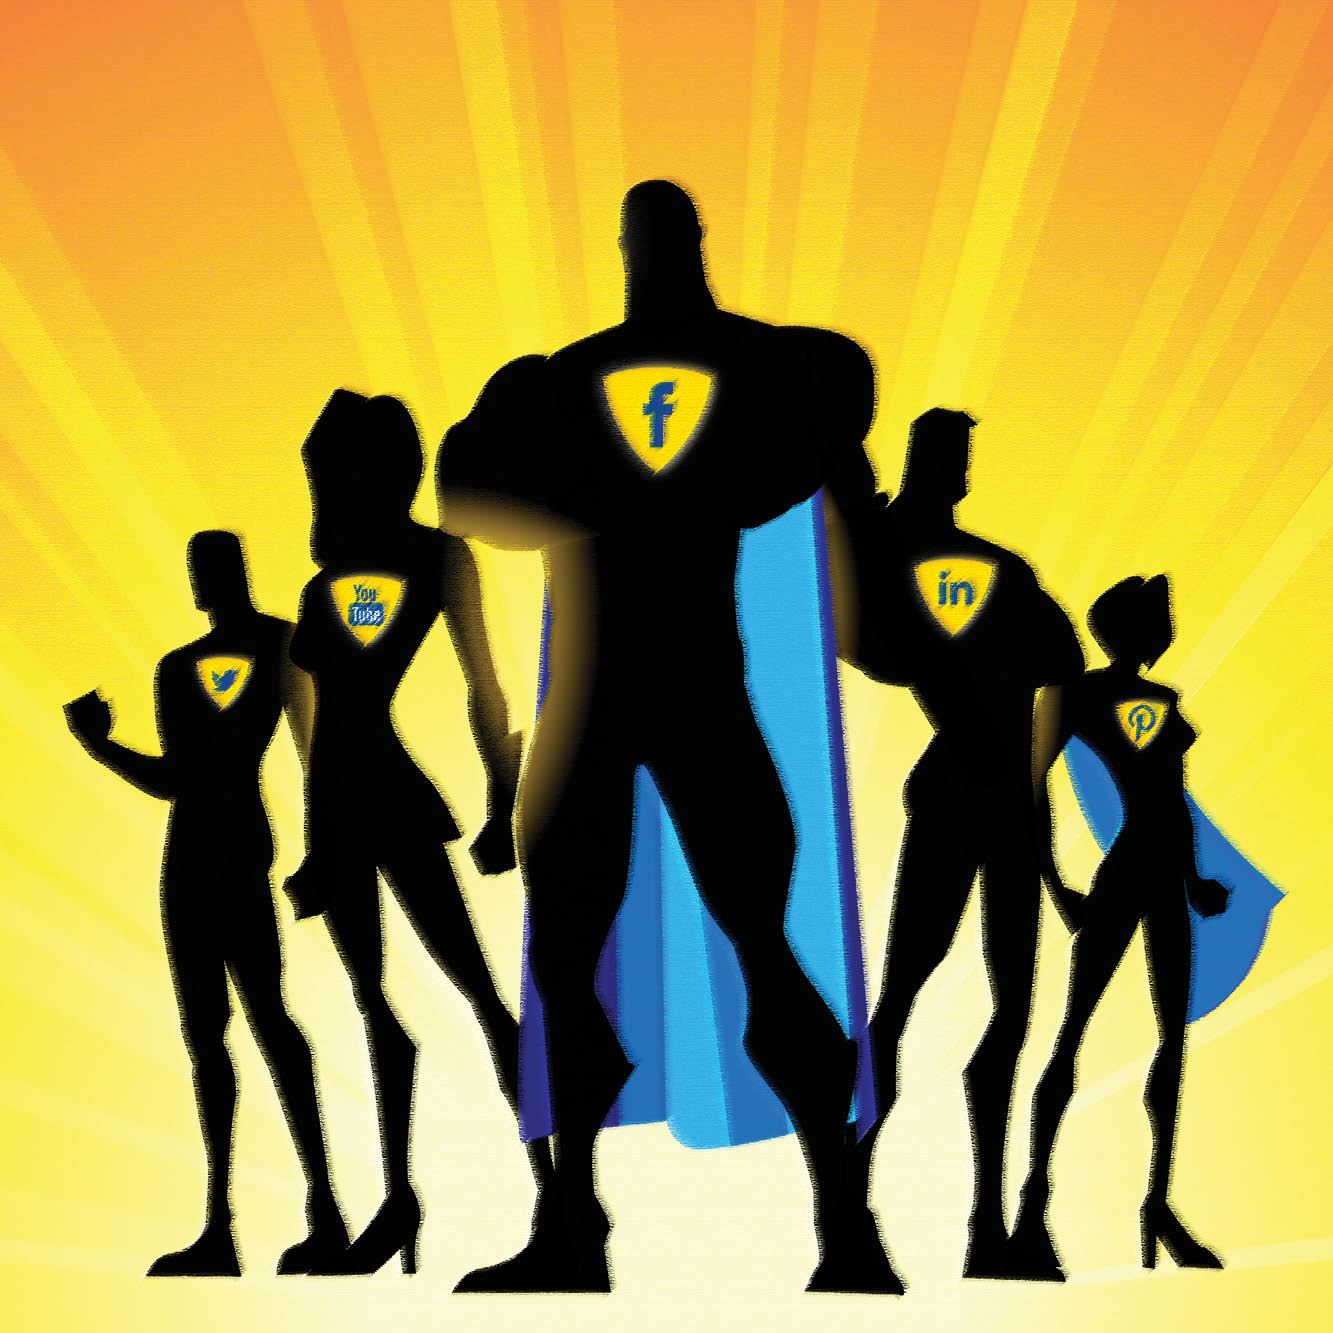 An illustration shows a group of silhouetted super heroes bearing different social media icons on their chests.